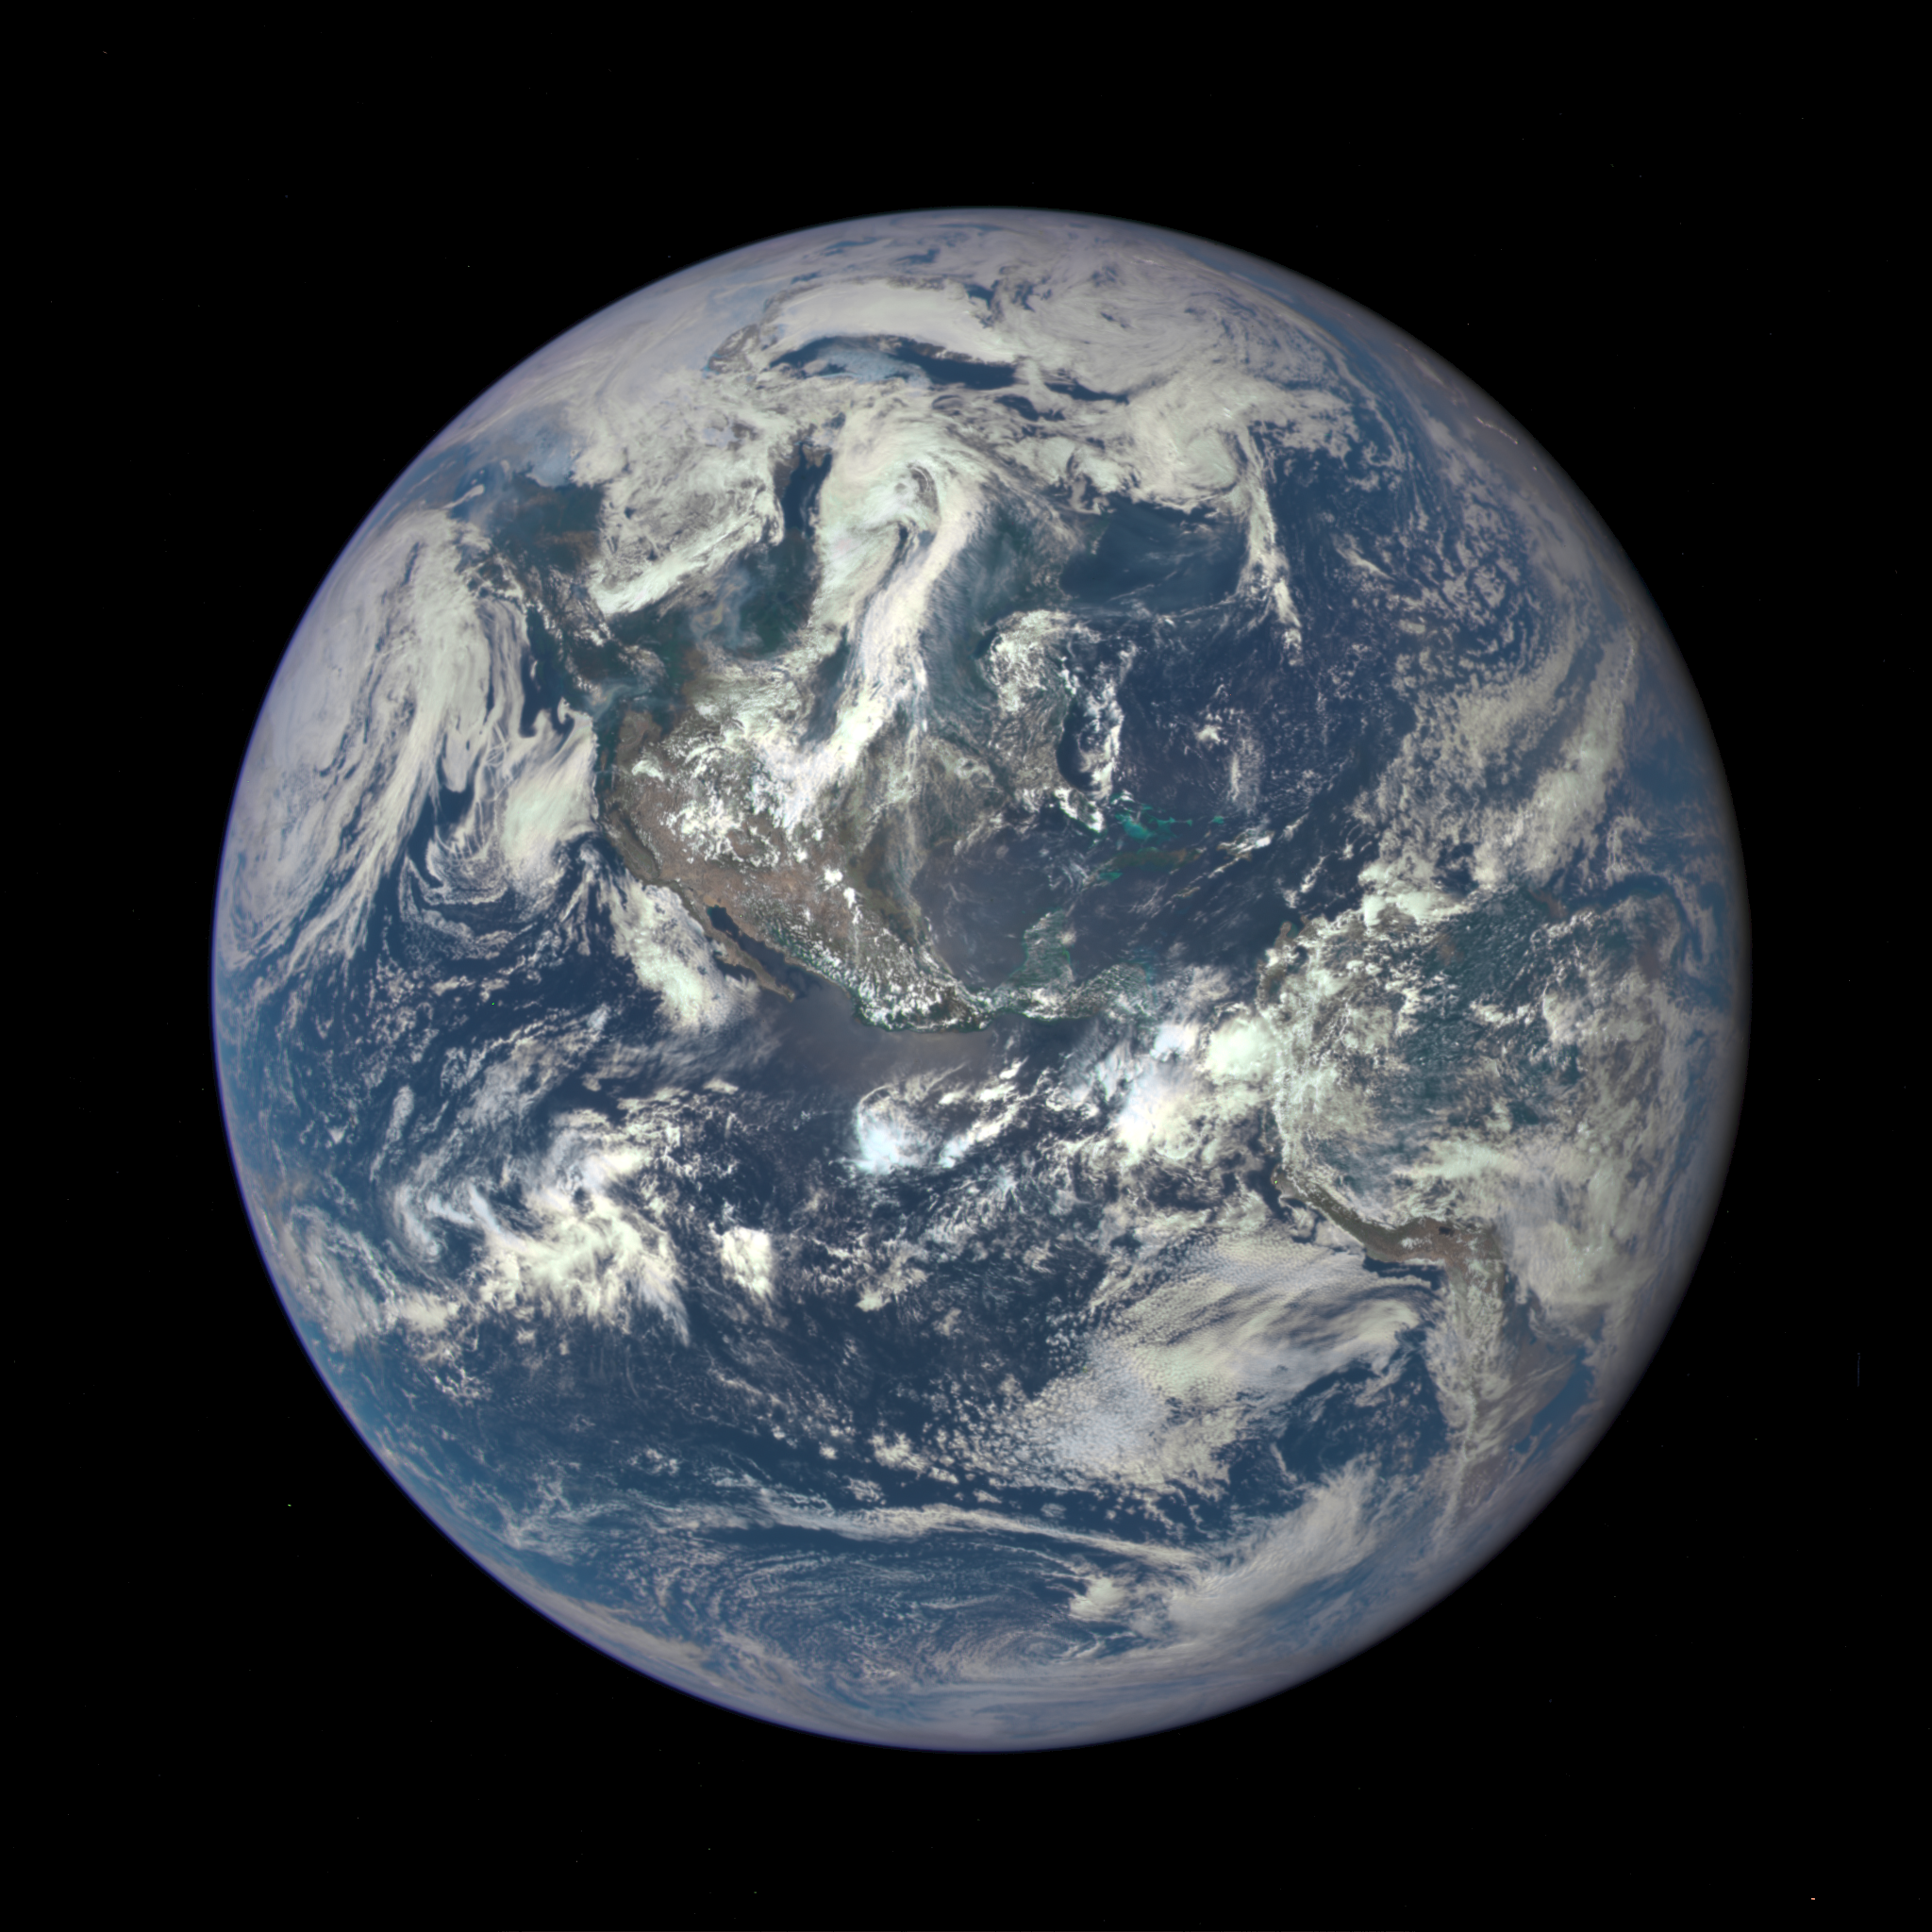 Earth as seen on July 6, 2015 from a distance of one million miles by a NASA scientific camera aboard the Deep Space Climate Observatory spacecraft. Credit: NASA